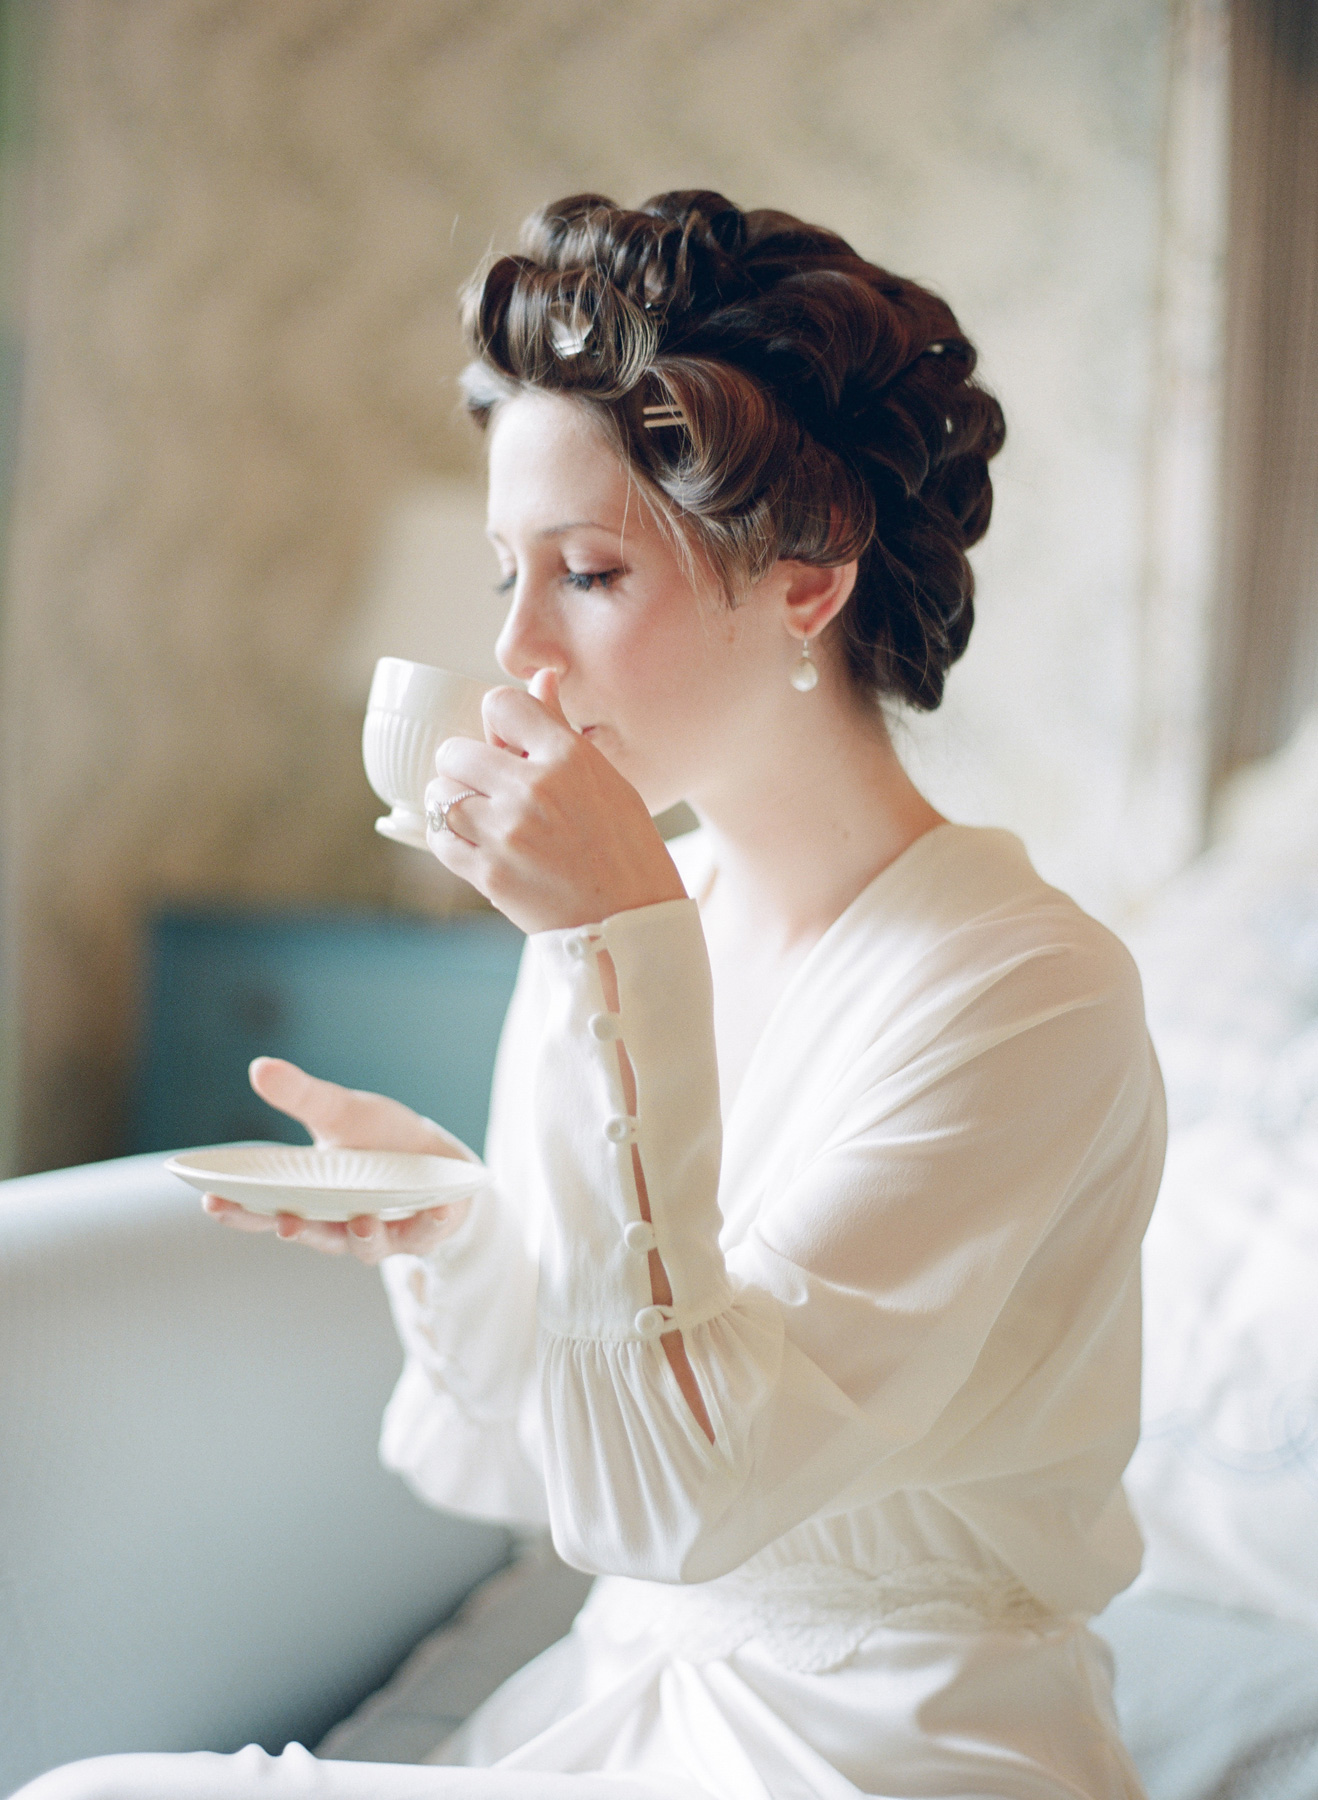 Bride in curlers sipping tea before wedding